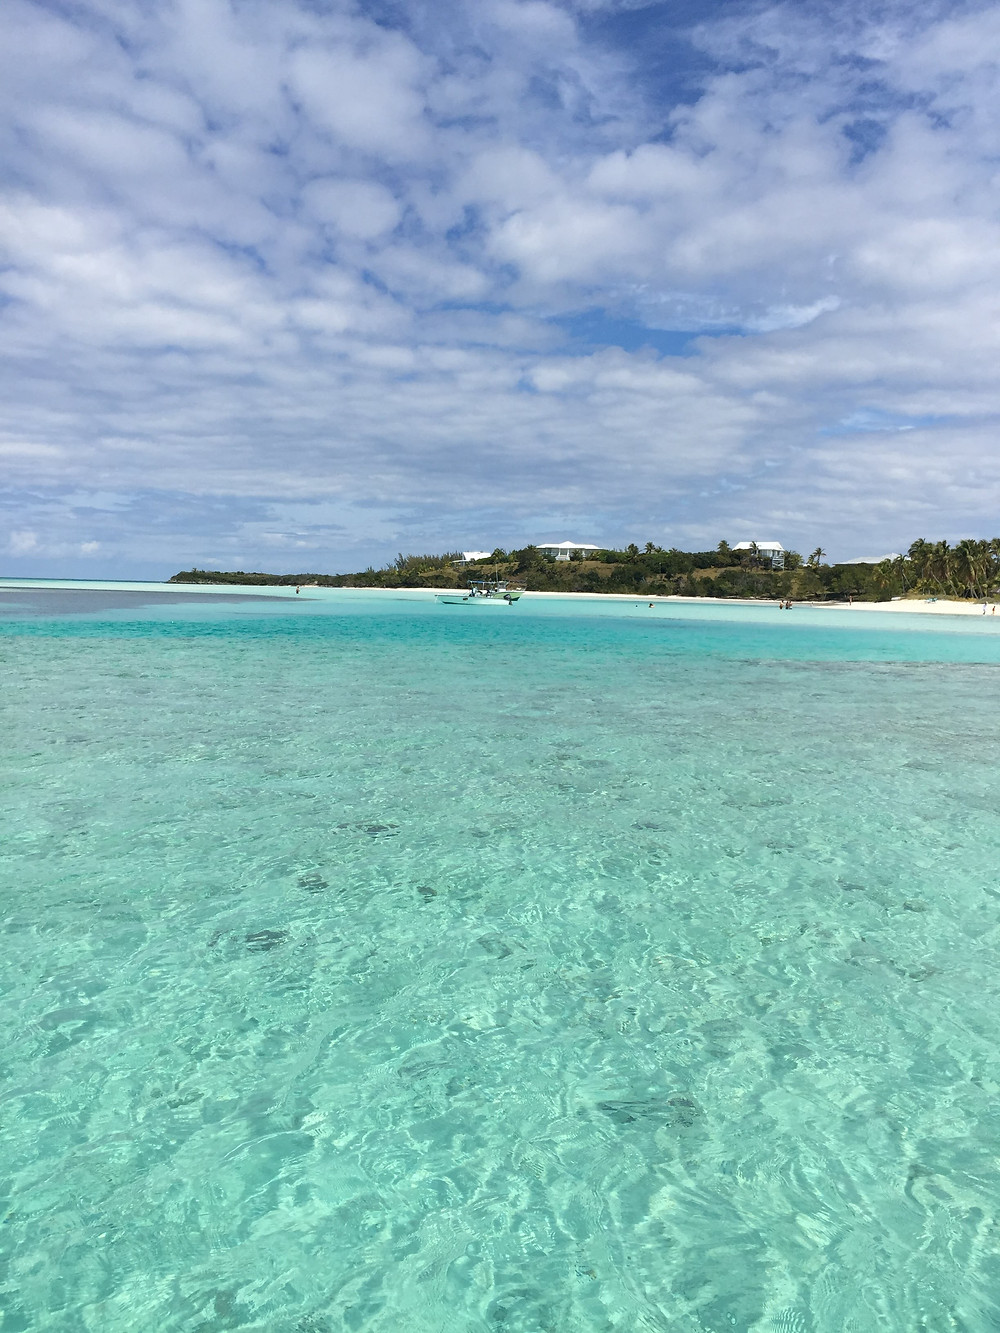 Scotland Cay in Abaco, The Bahamas